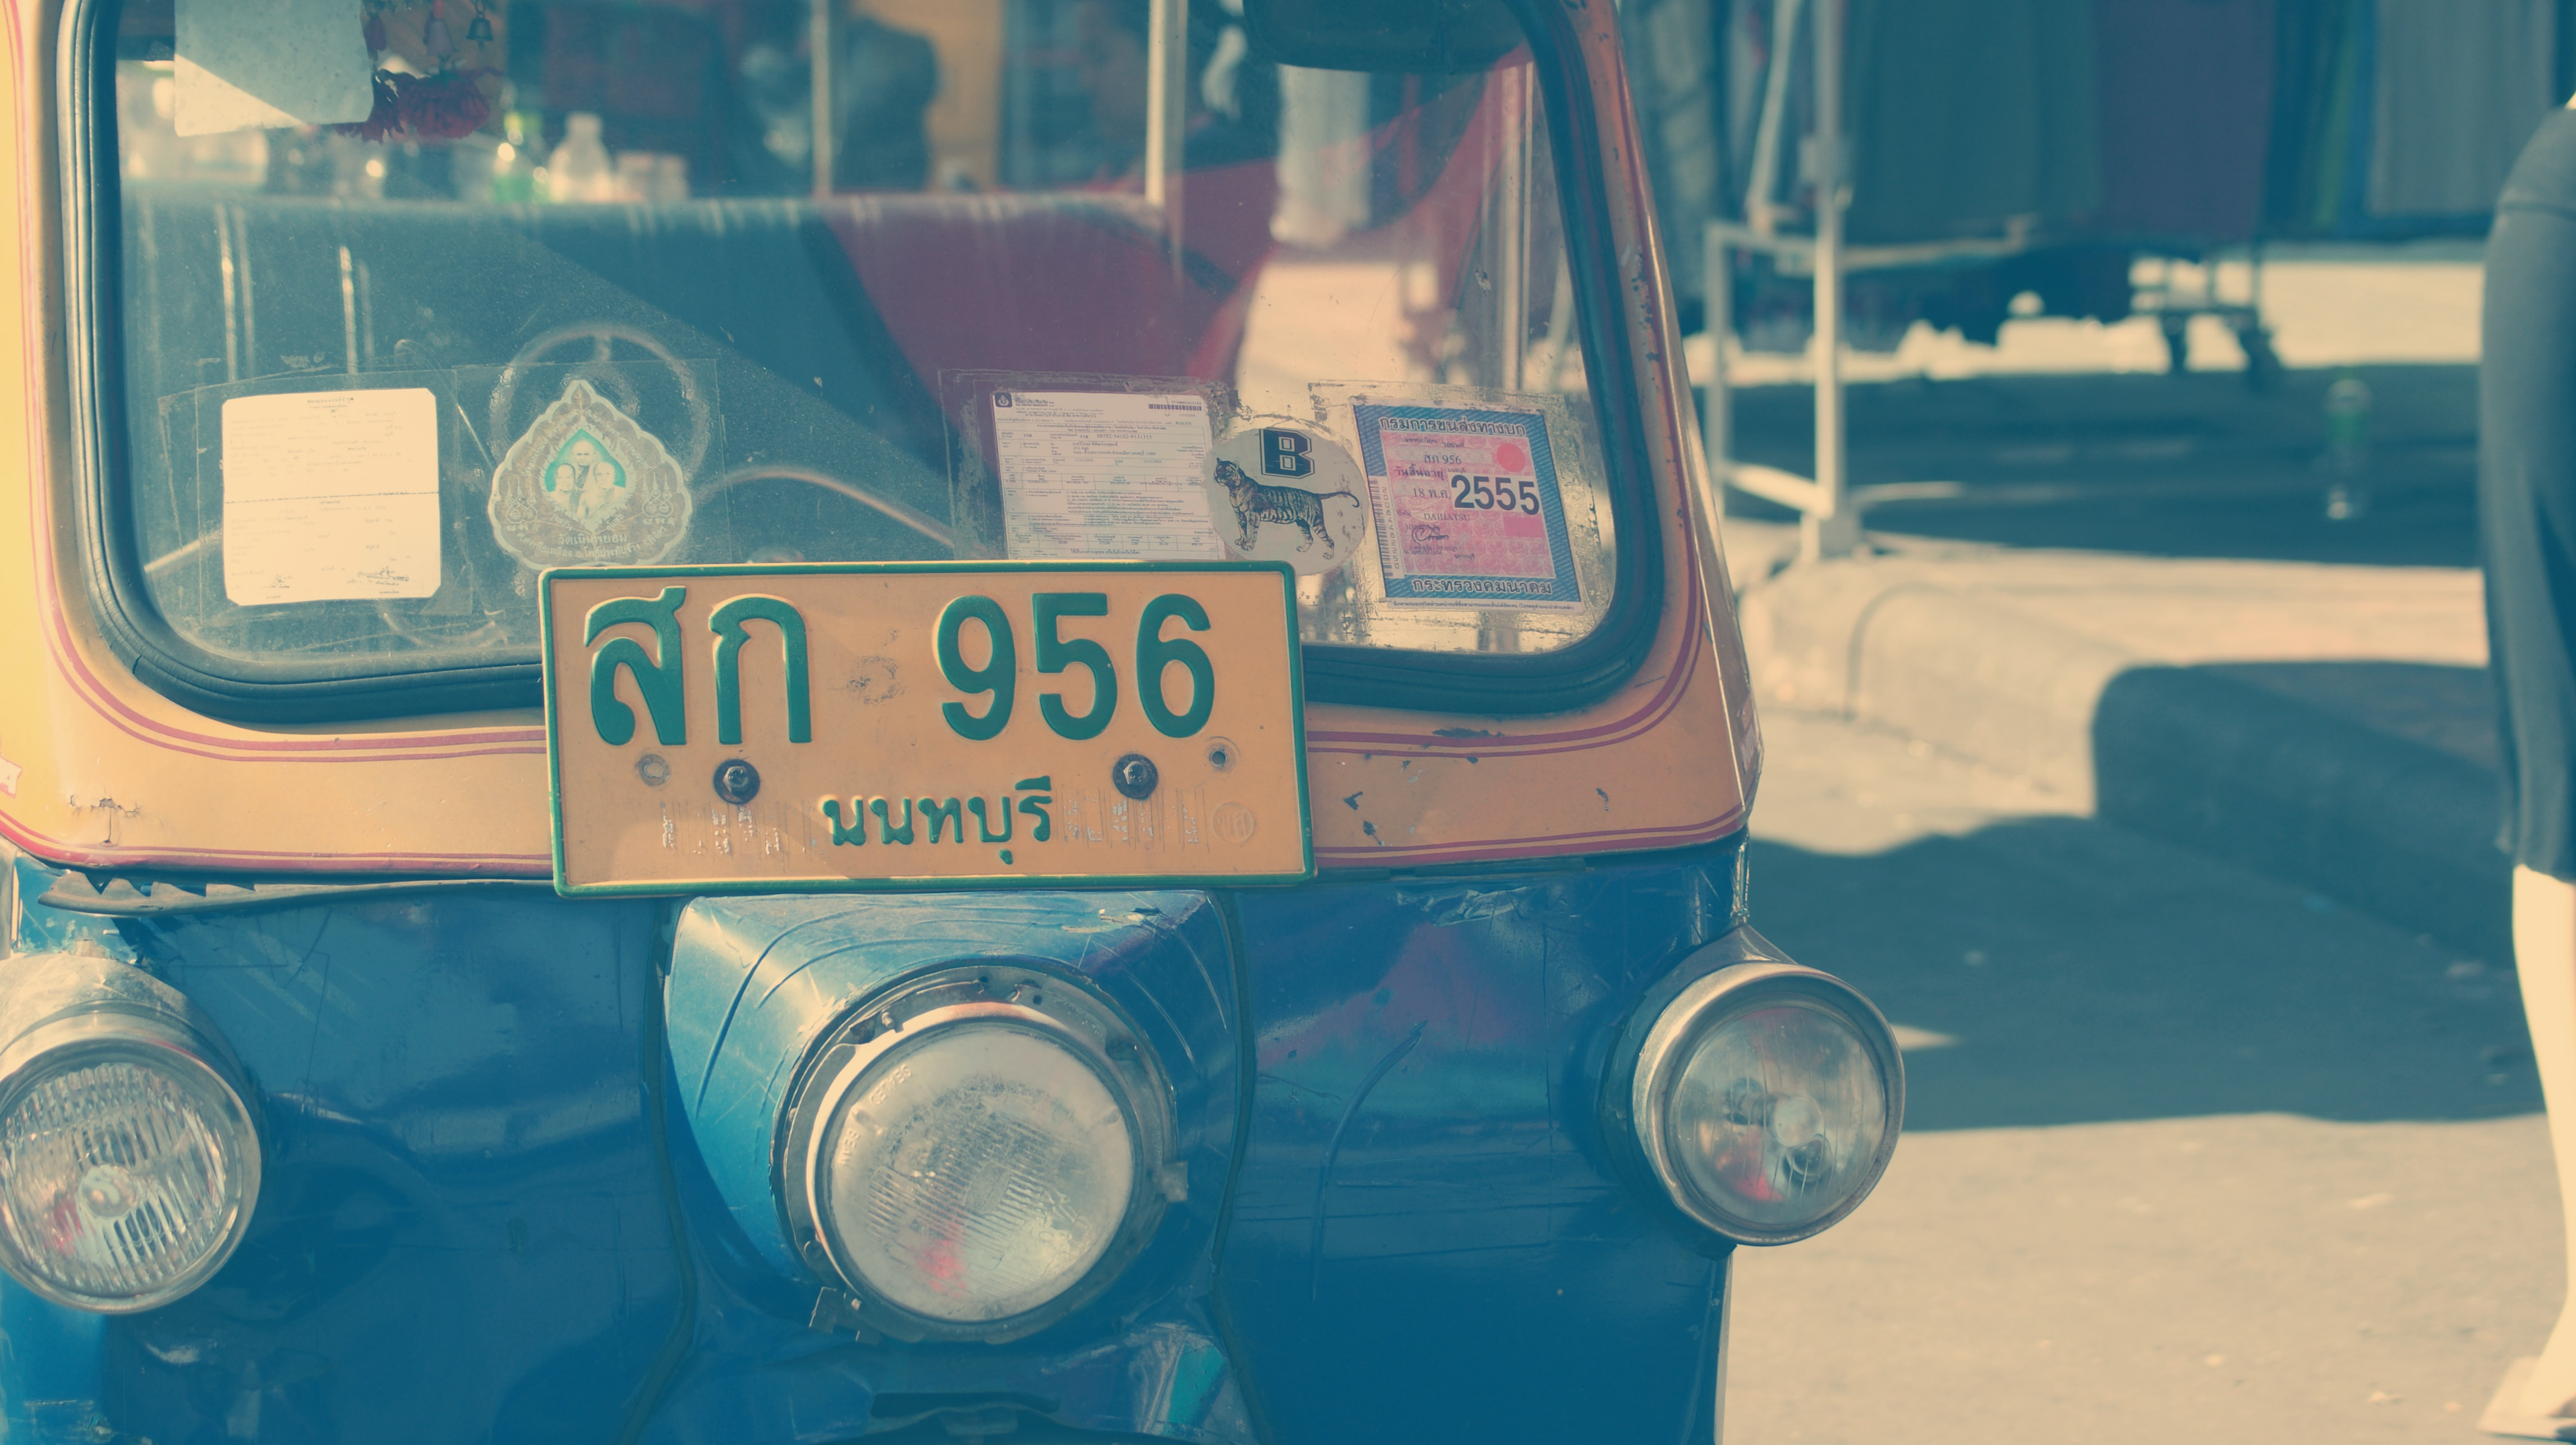 Macro view of tuk tuk taxi with front yellow license plate on street